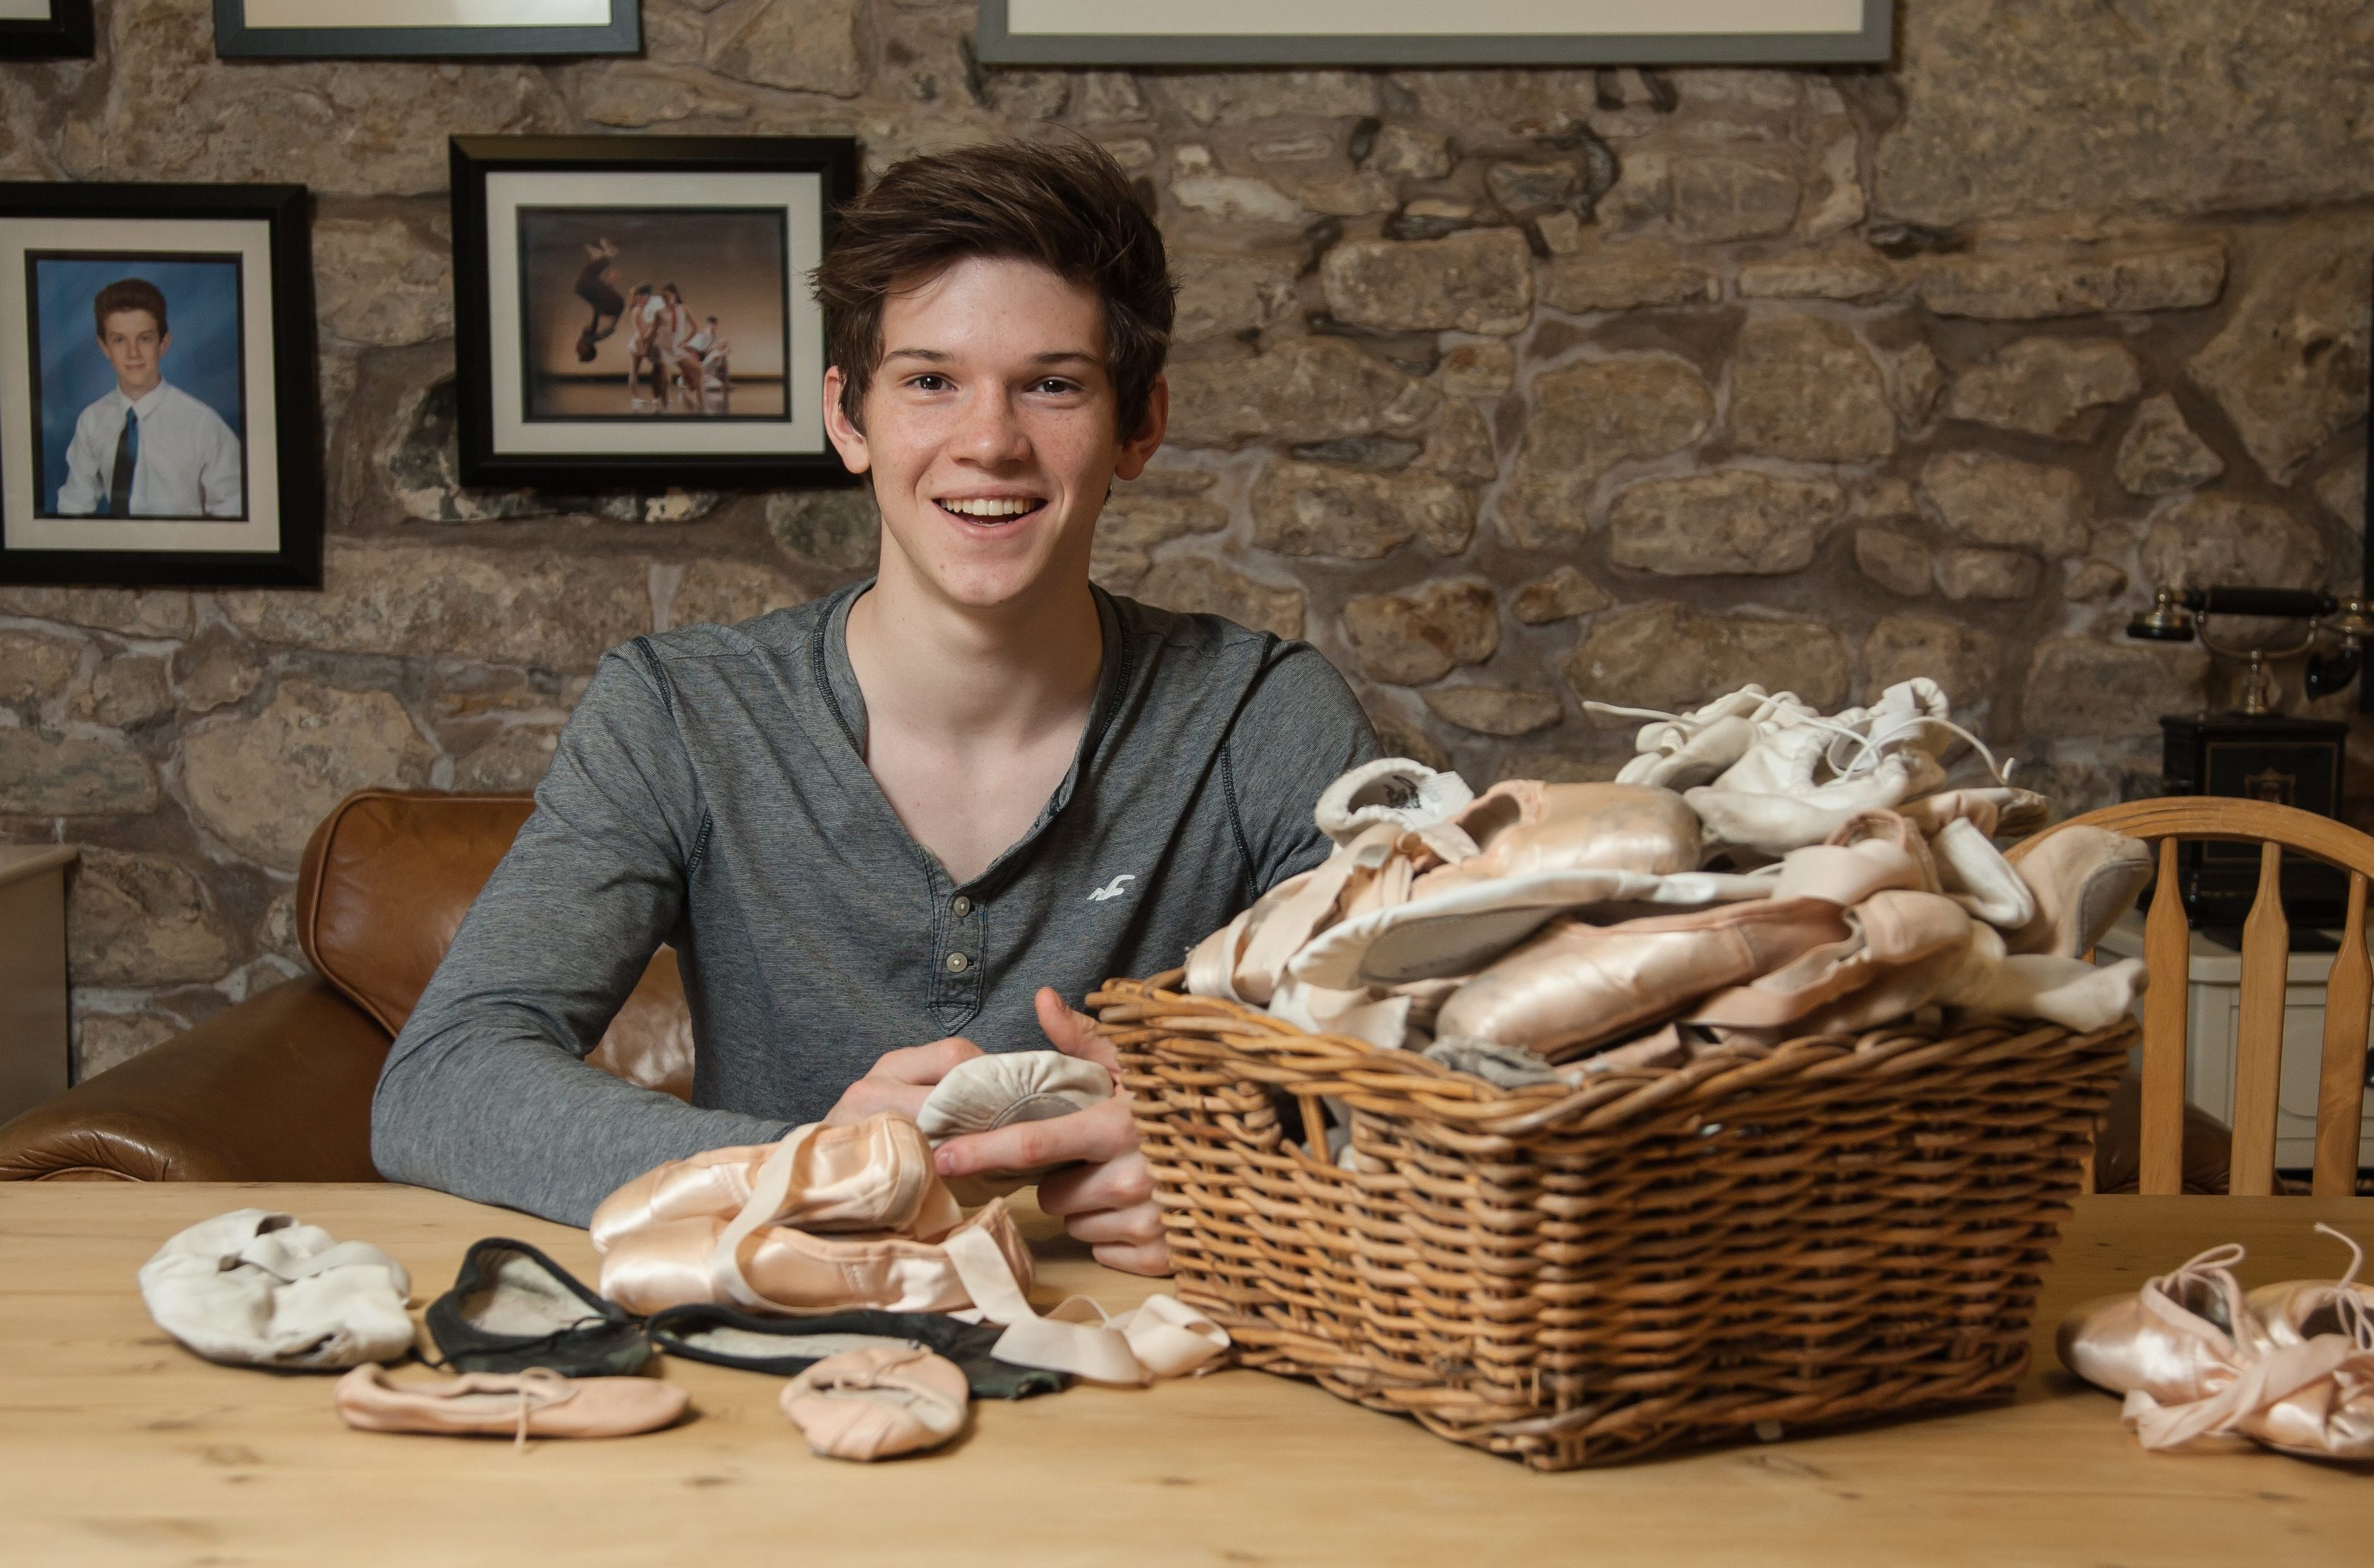 Harris Bell, 18, Perthshire ballet dancer studying at the Royal Ballet School, London.